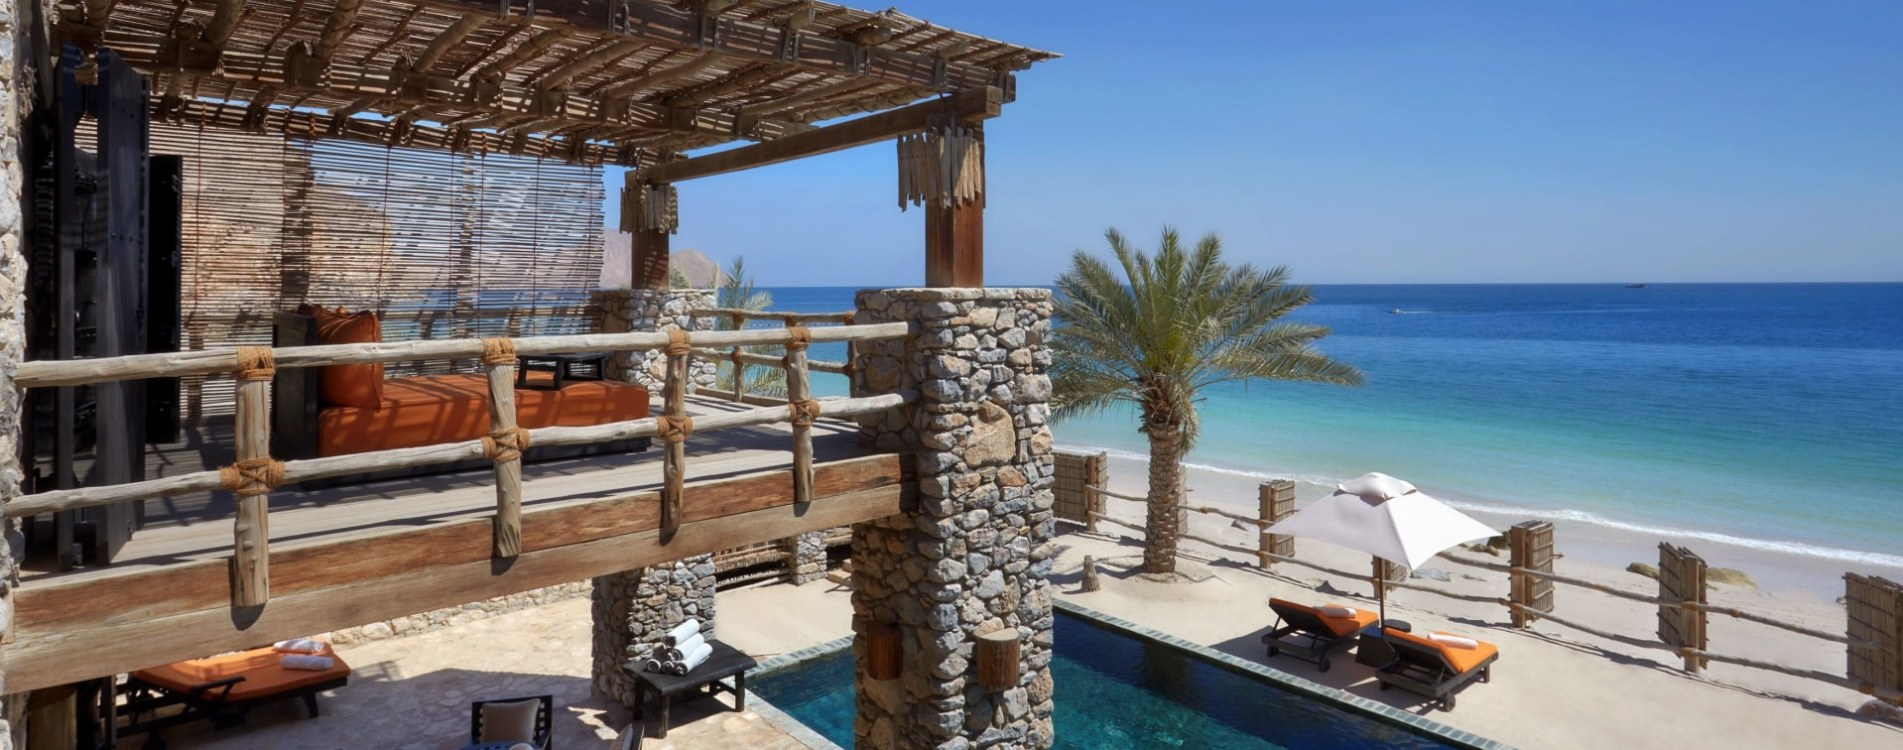 Six-Senses-Zighy-Bay-Two-Bedroom-Beachfront-Retreat-second-floor-balcony-Oman.jpg